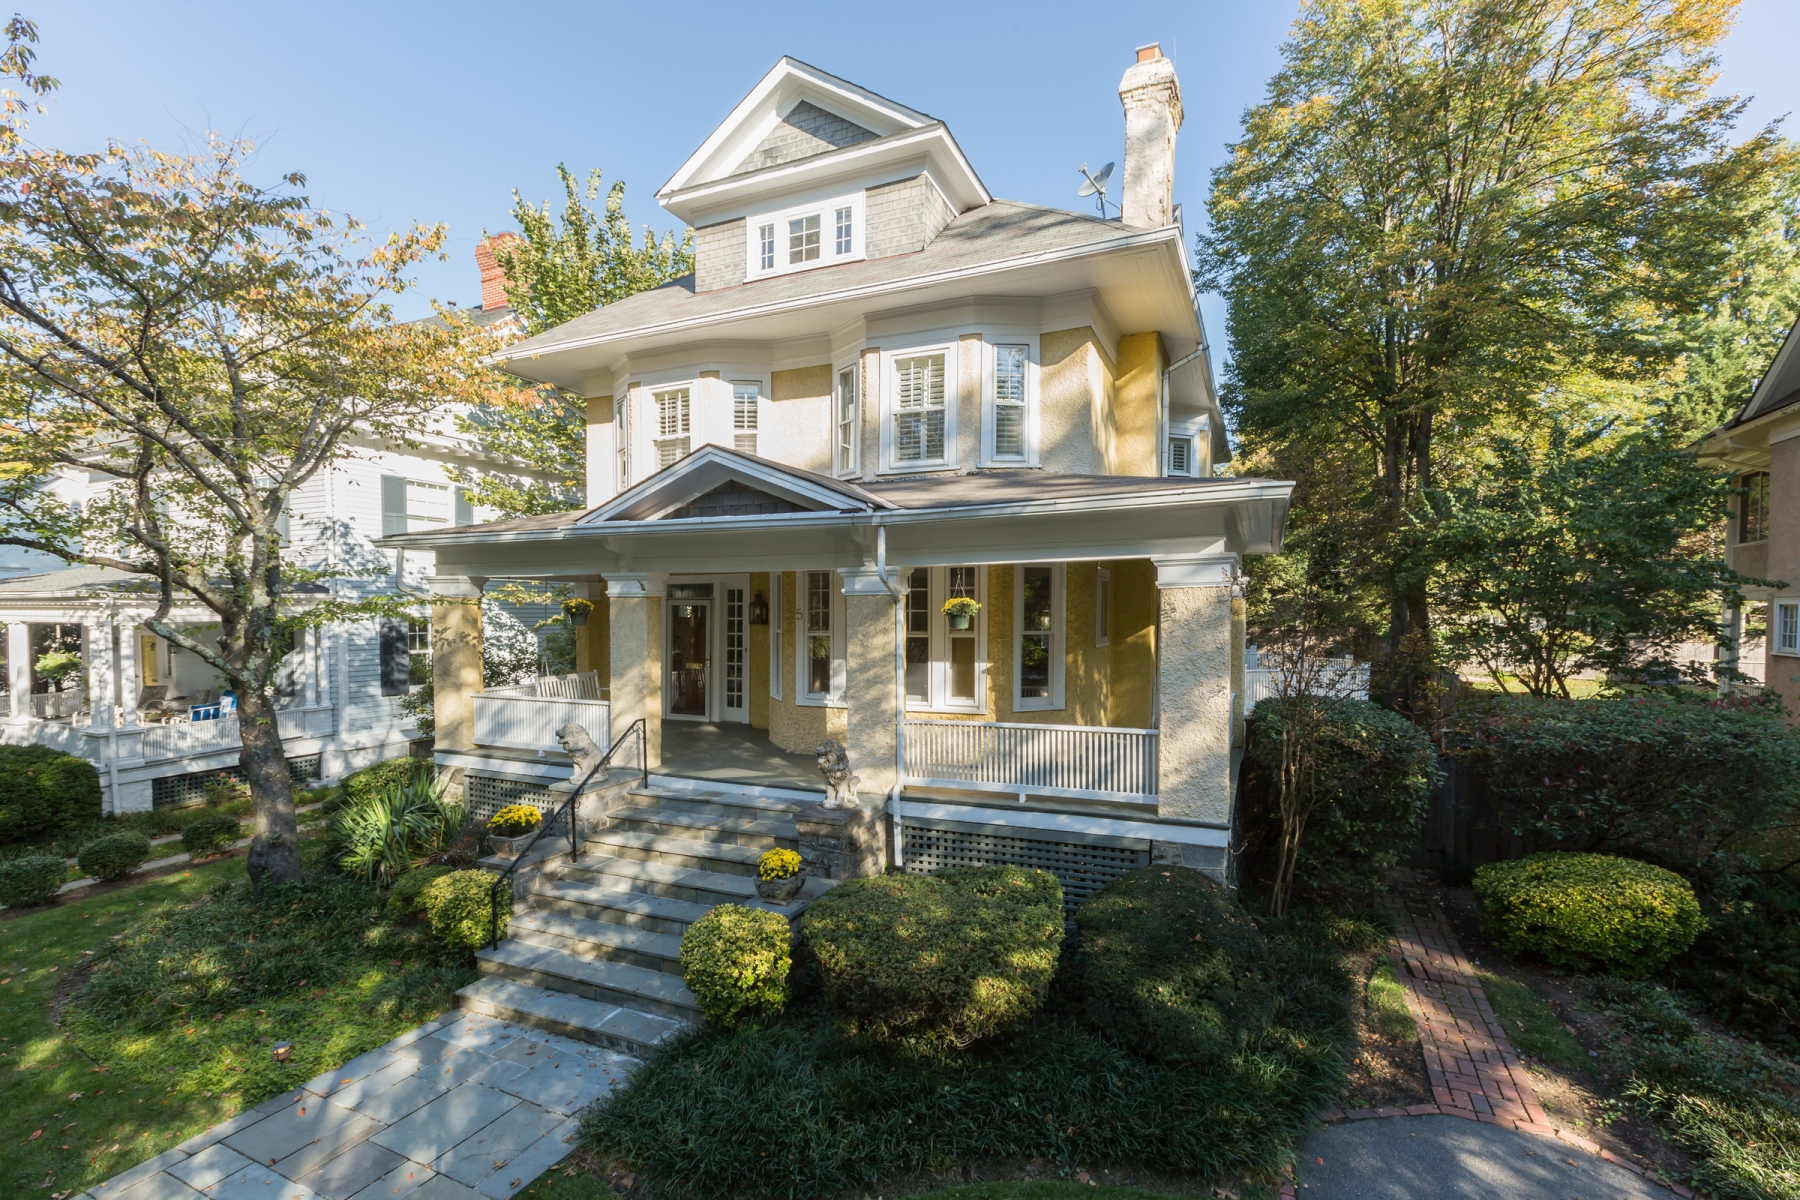 Single Family Home for Sale at 5 Irving Street E, Chevy Chase Chevy Chase, Maryland, 20815 United States